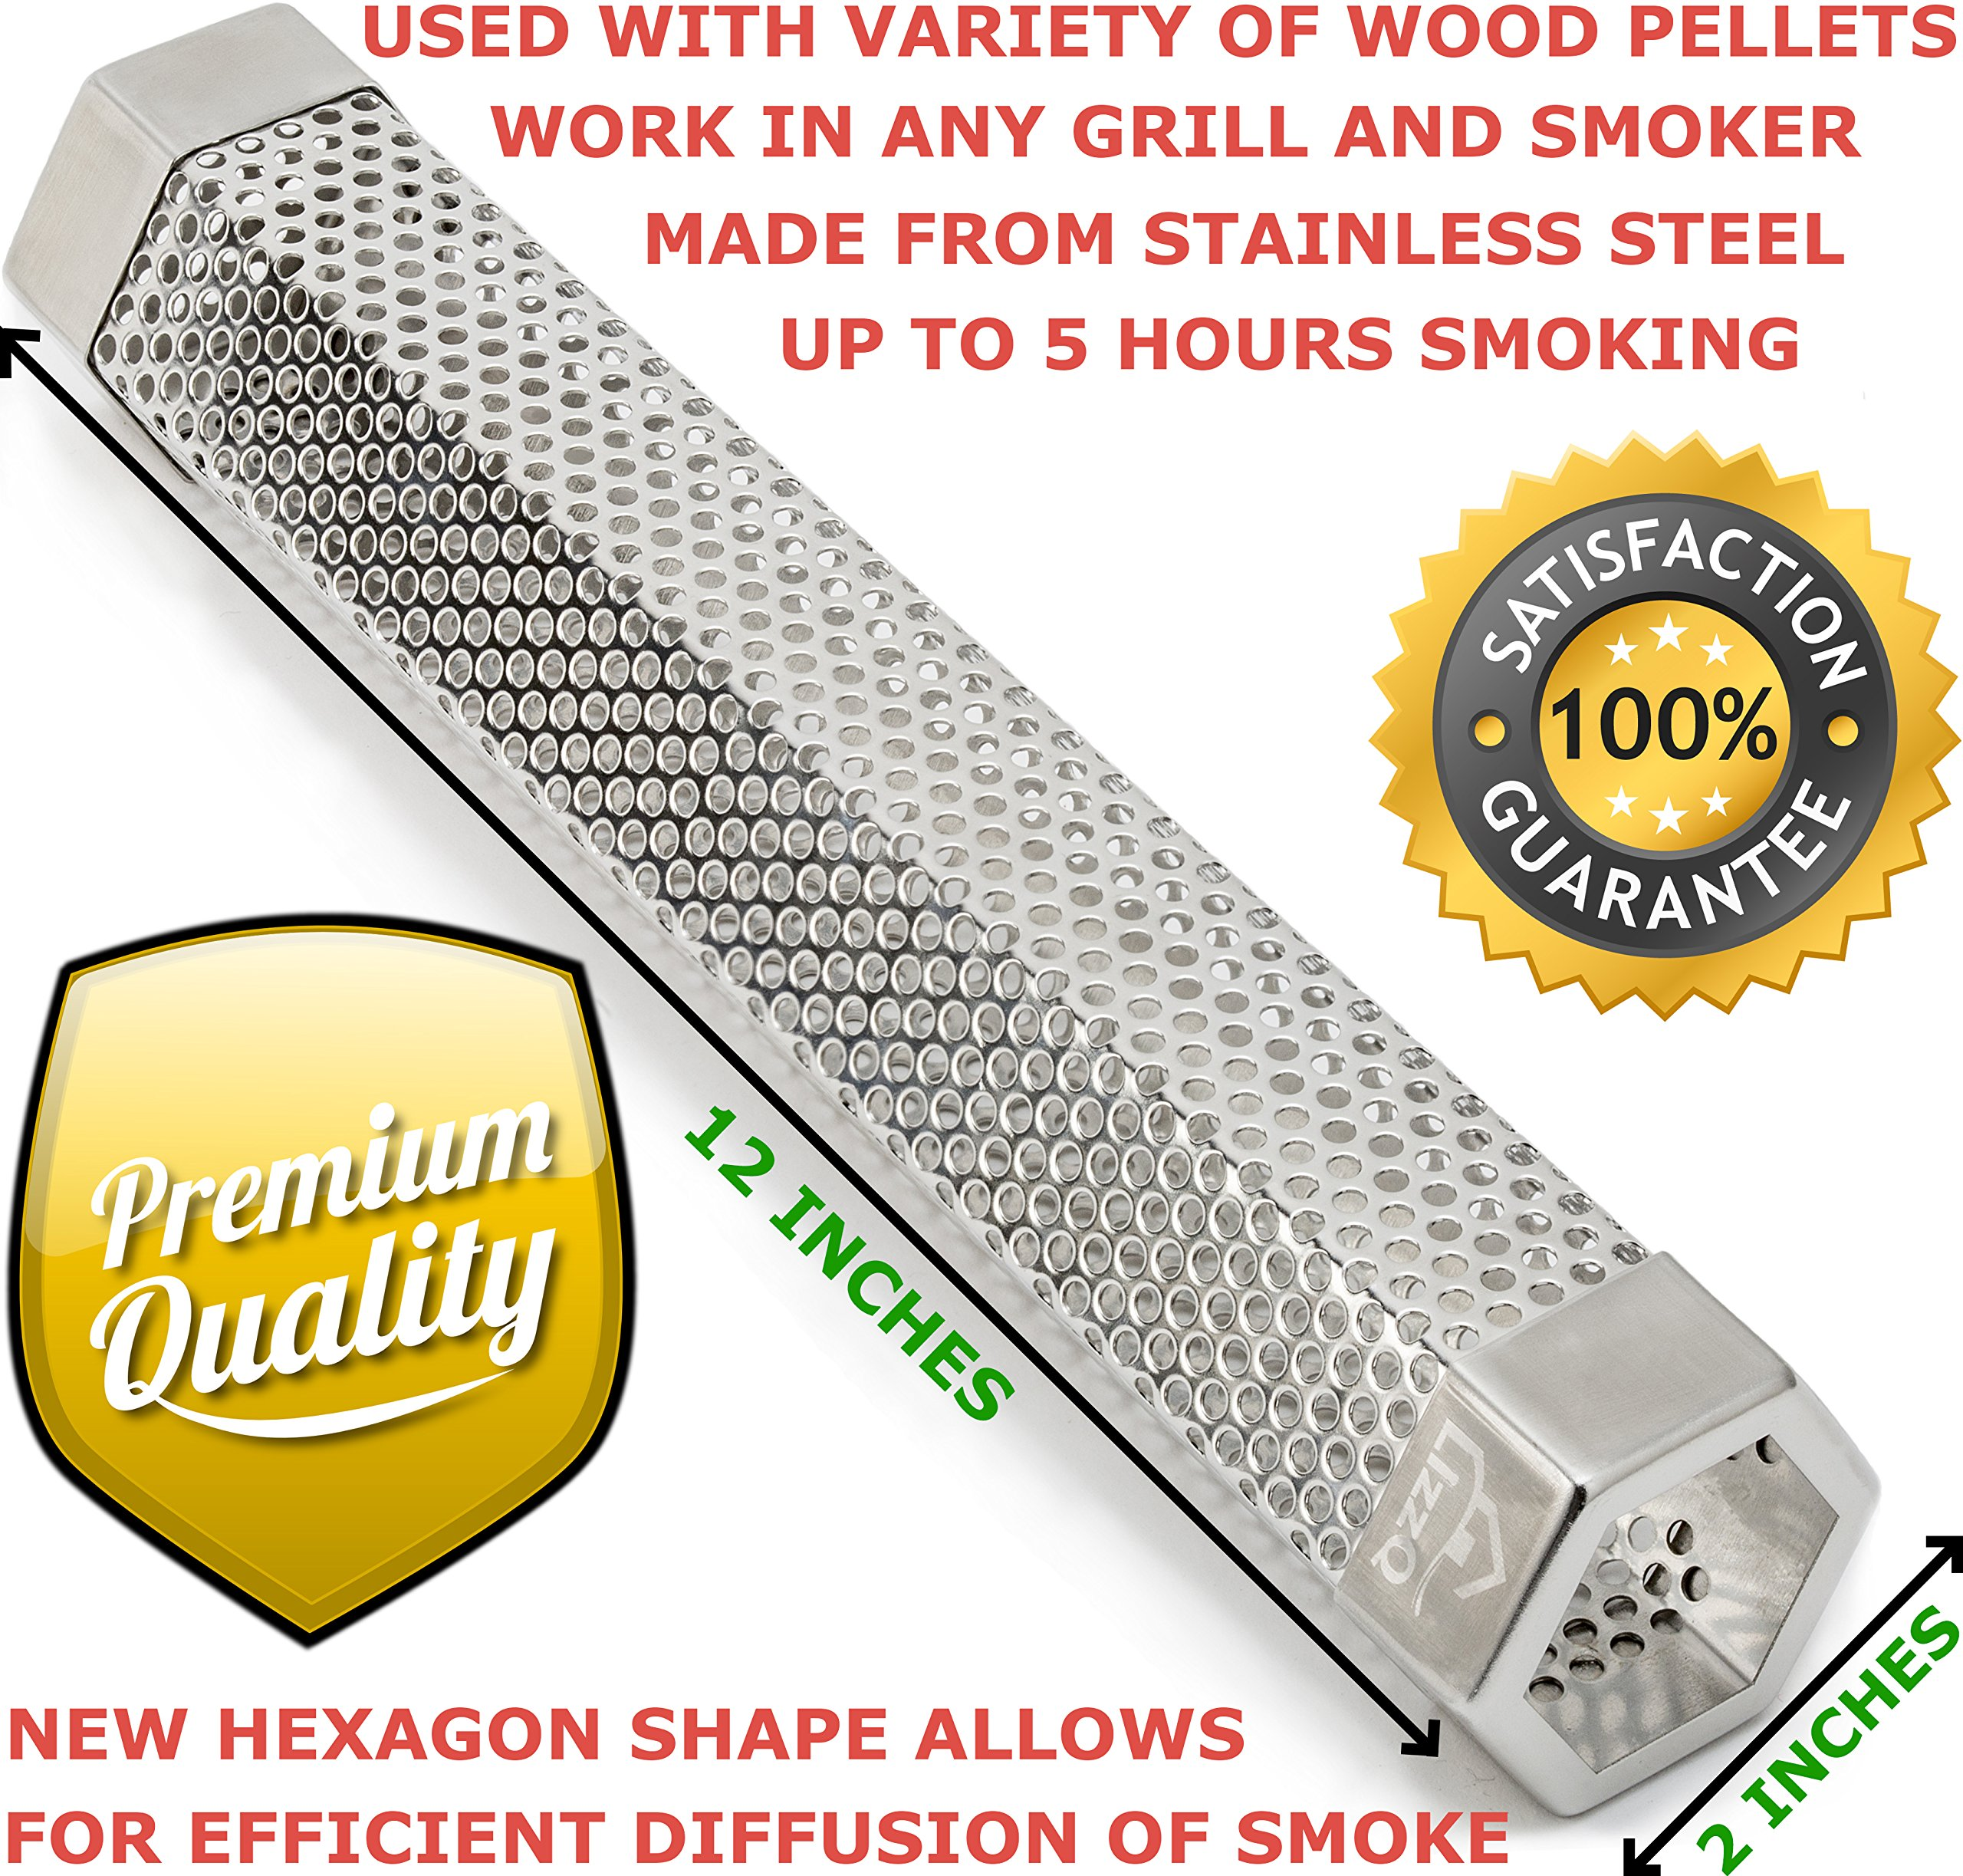 LIZZQ Premium Pellet Smoker Tube 12'' - 5 Hours Billowing Smoke any Grill Smoker, Hot Cold Smoking - Easy, safety tasty smoking - Free eBook Grilling Ideas Recipes by LIZZQ (Image #7)